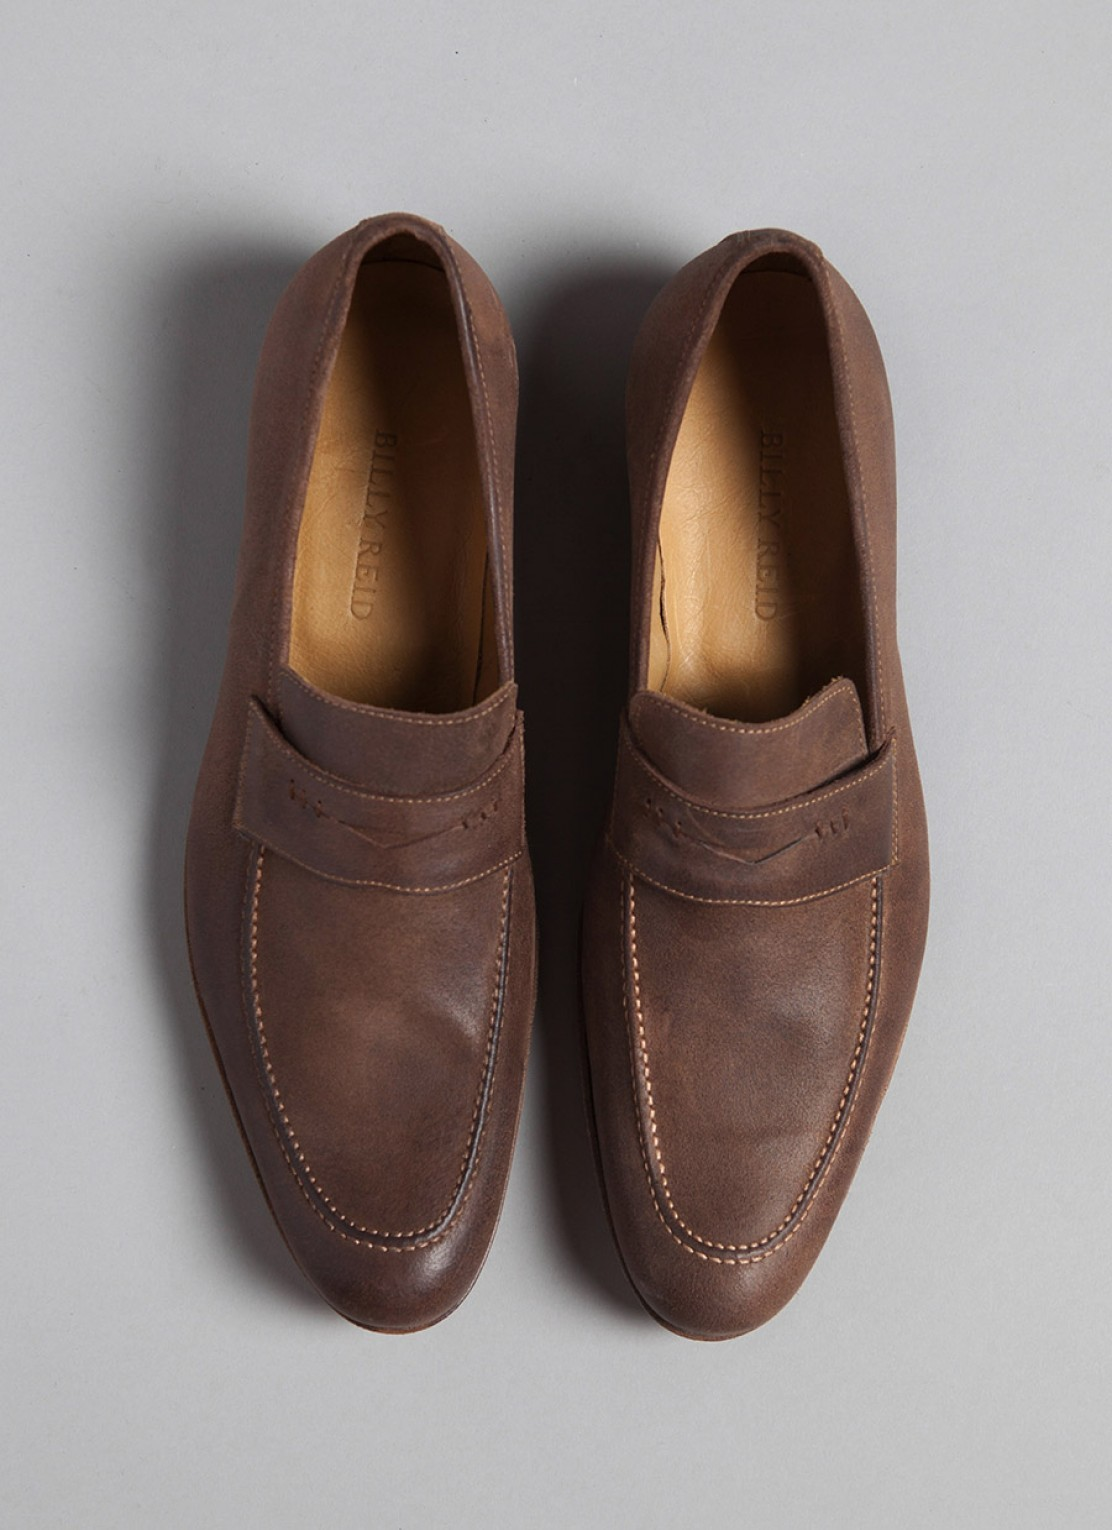 surplus-mag:  Billy Reid Loafers We can't honestly recommend these Billy Reid loafers for rock climbing or alligator wrestling, but you can wear them for just about anything else.